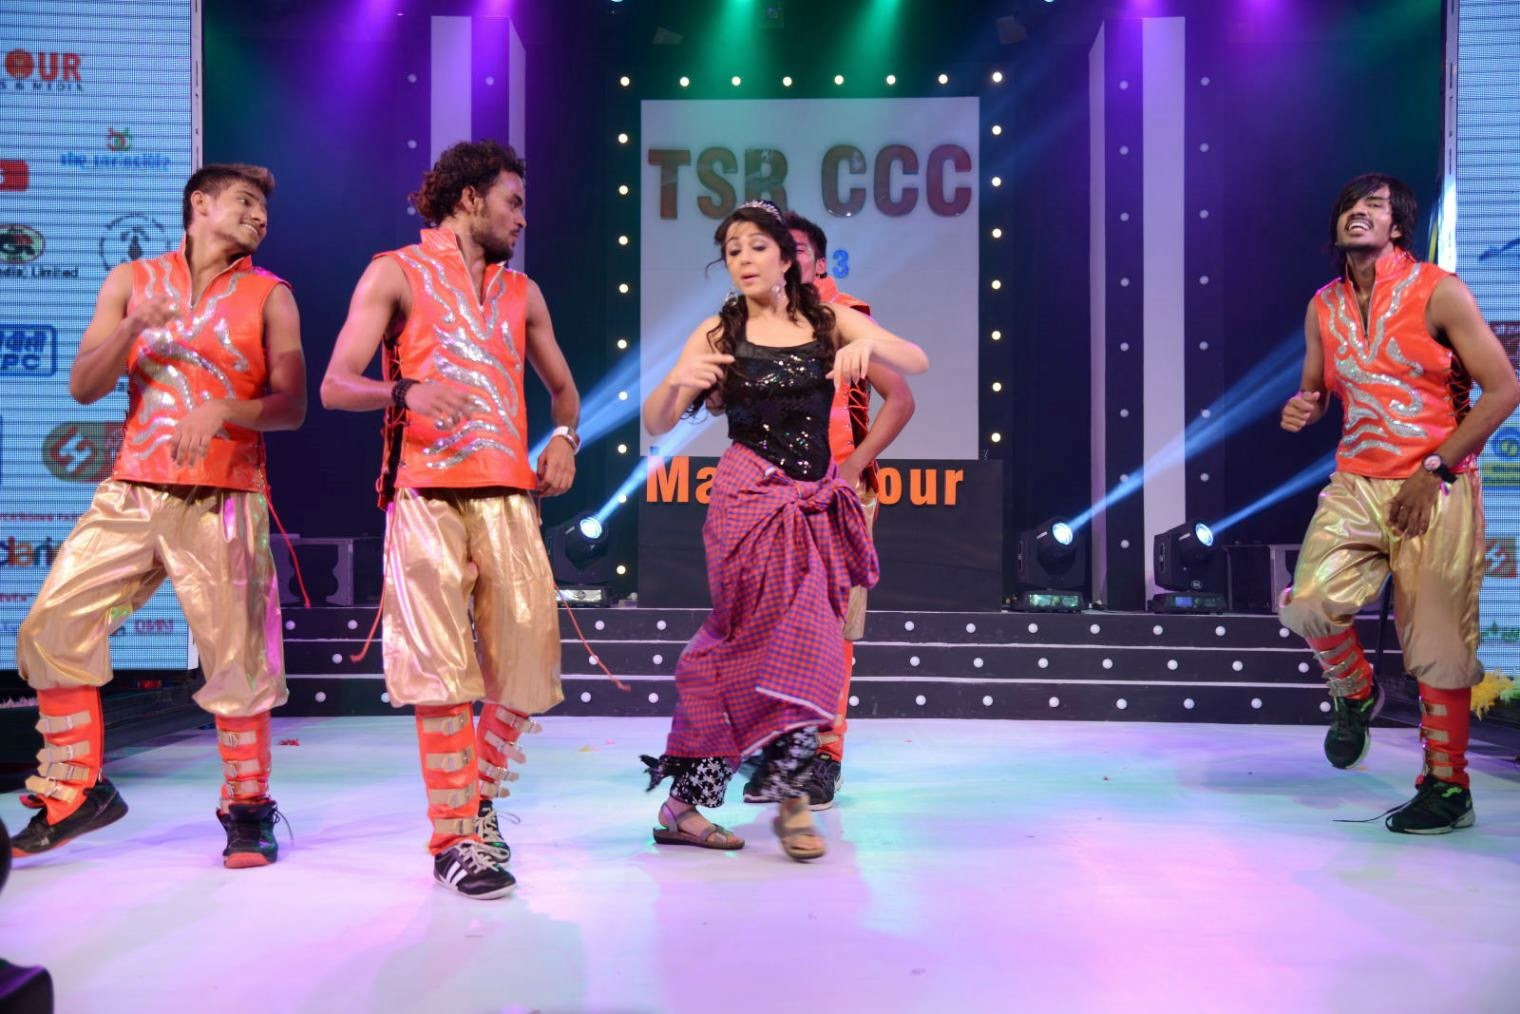 Charmi kaur hot dance performance on stage at cccup